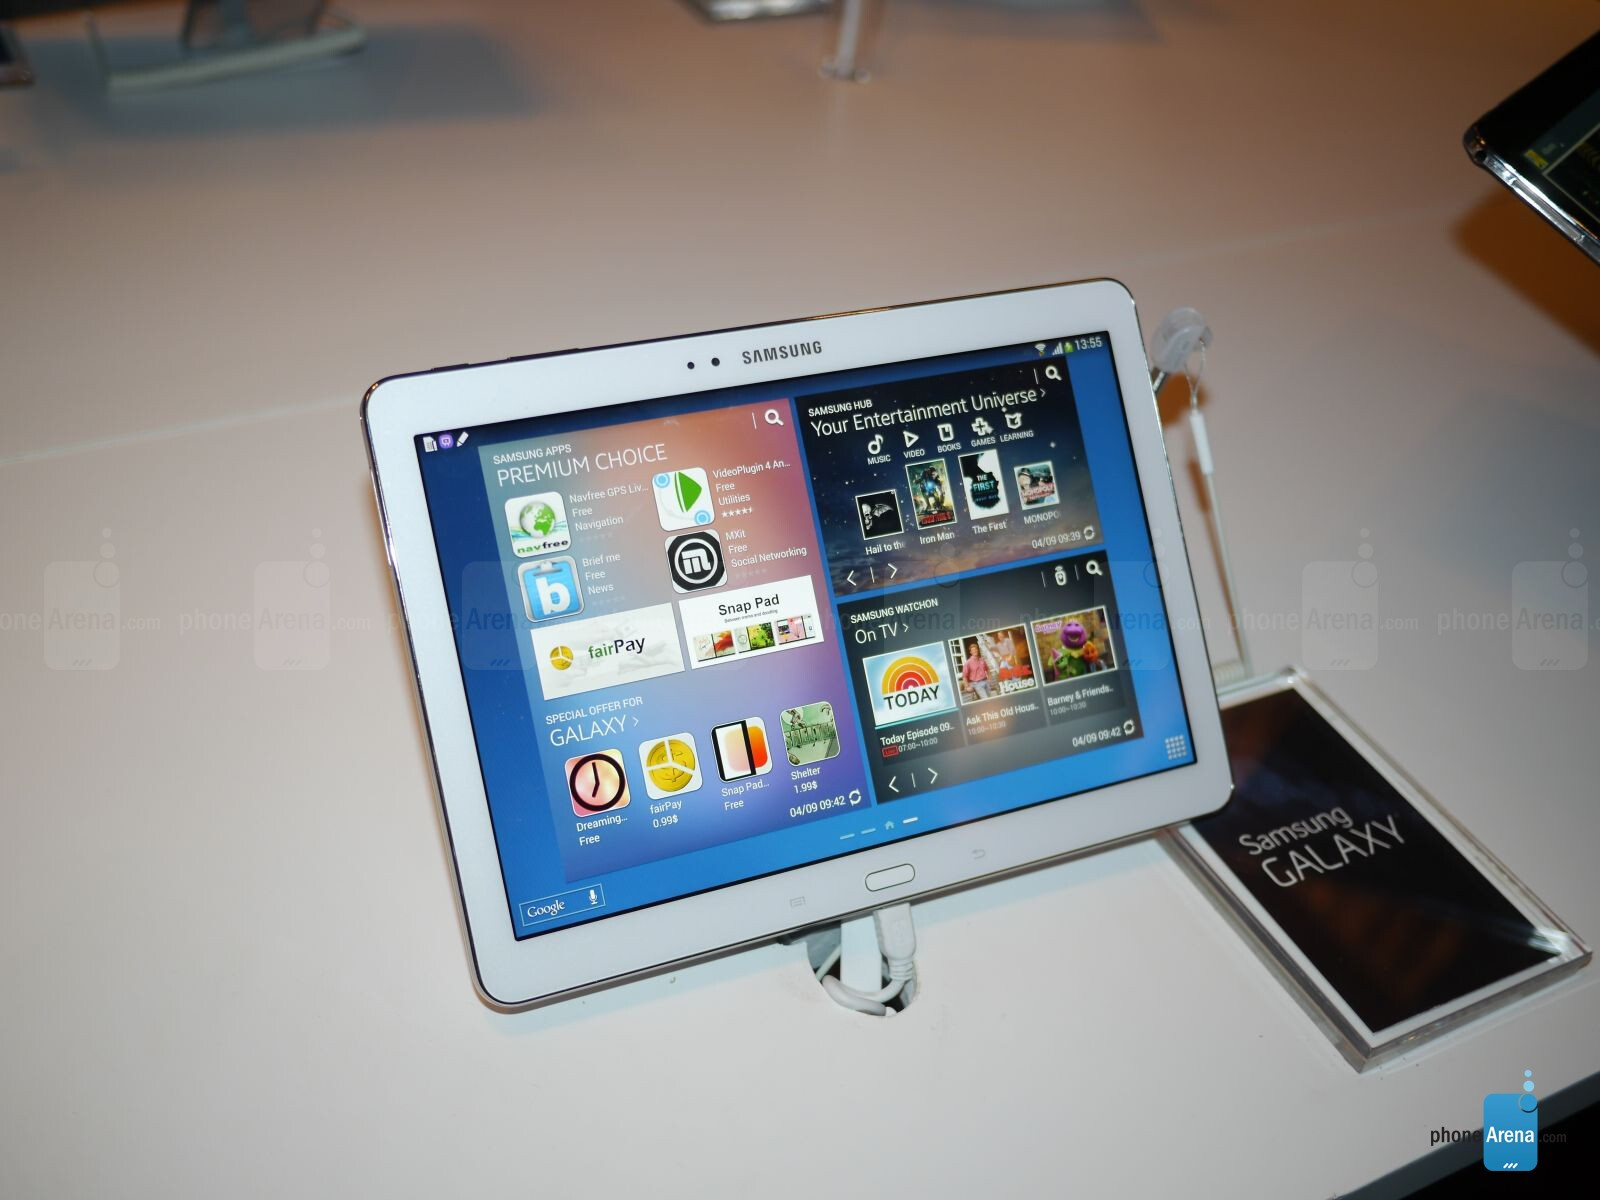 samsung galaxy note 10 1 2014 edition hands on. Black Bedroom Furniture Sets. Home Design Ideas